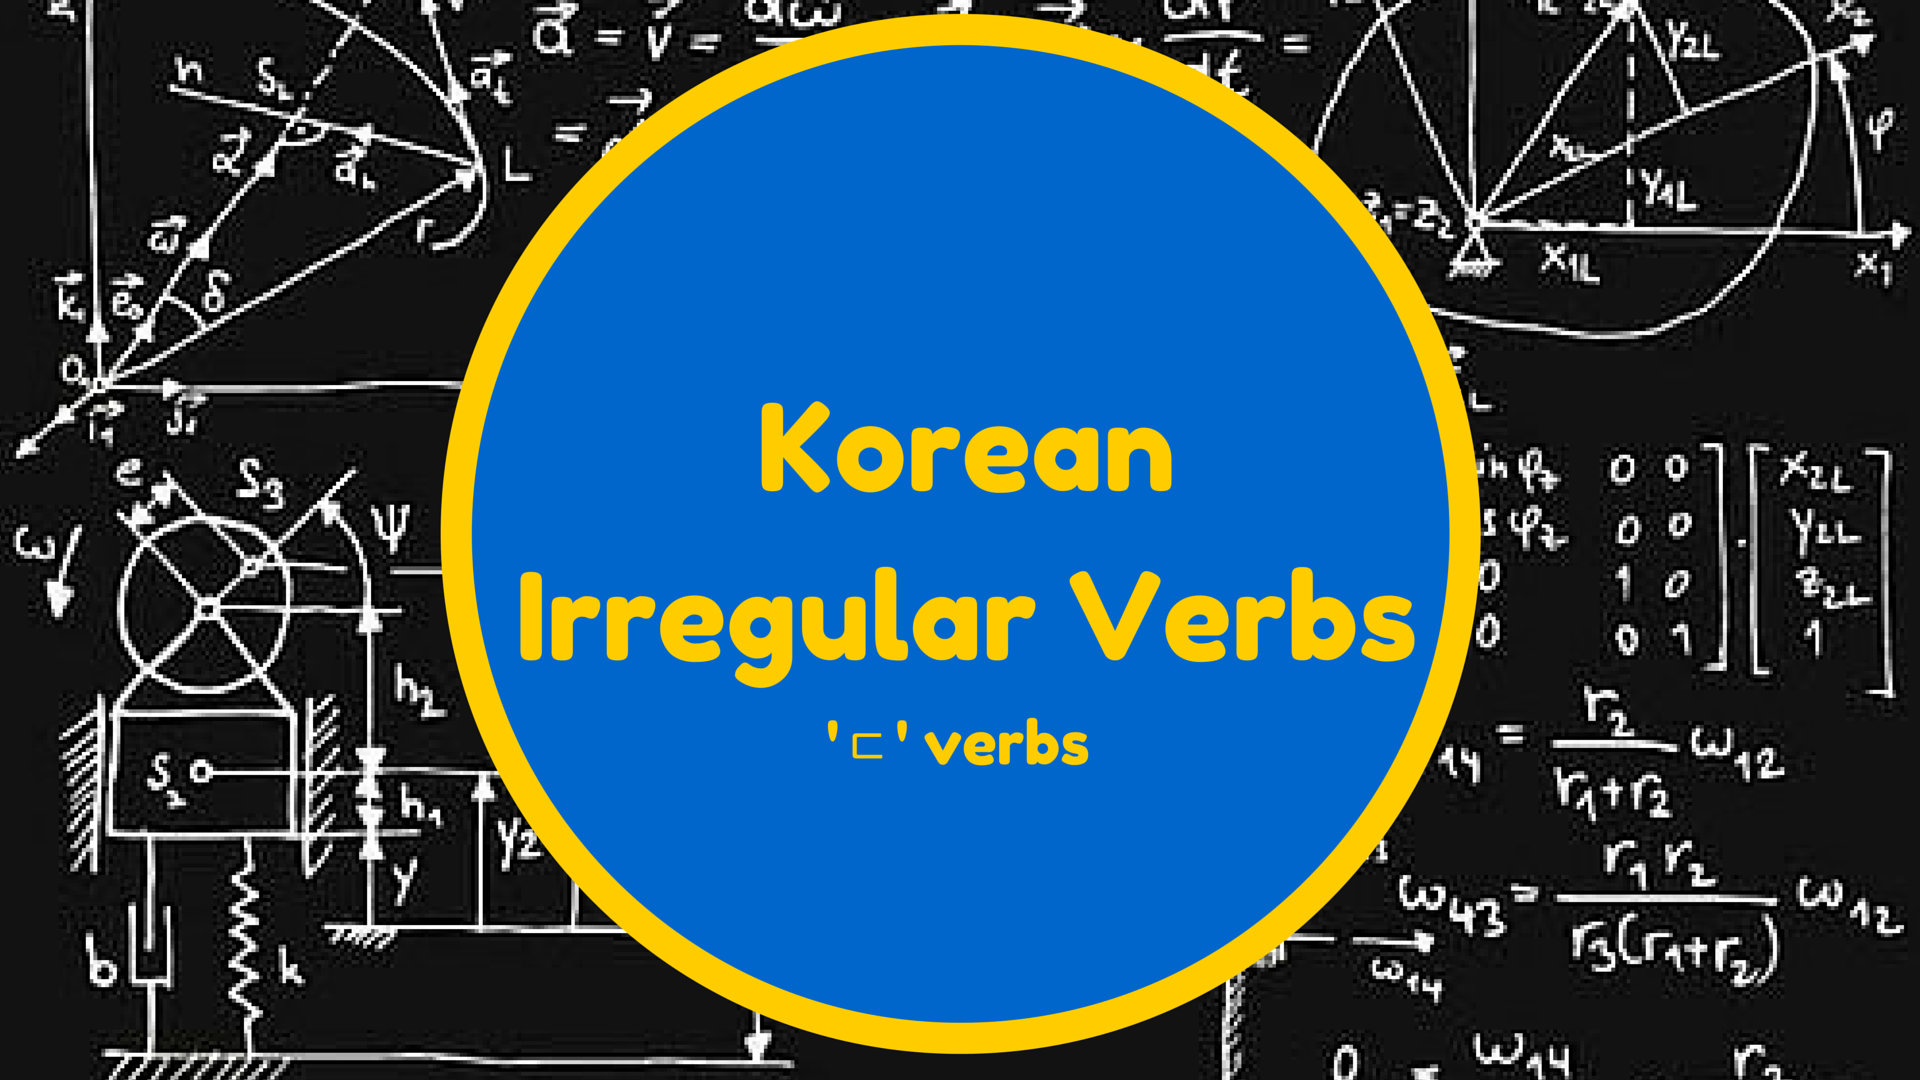 Another group of irregular verbs are the ㄷ irregular verbs. Like all previous groups it is named after the verb stems final consonant ㄷ.